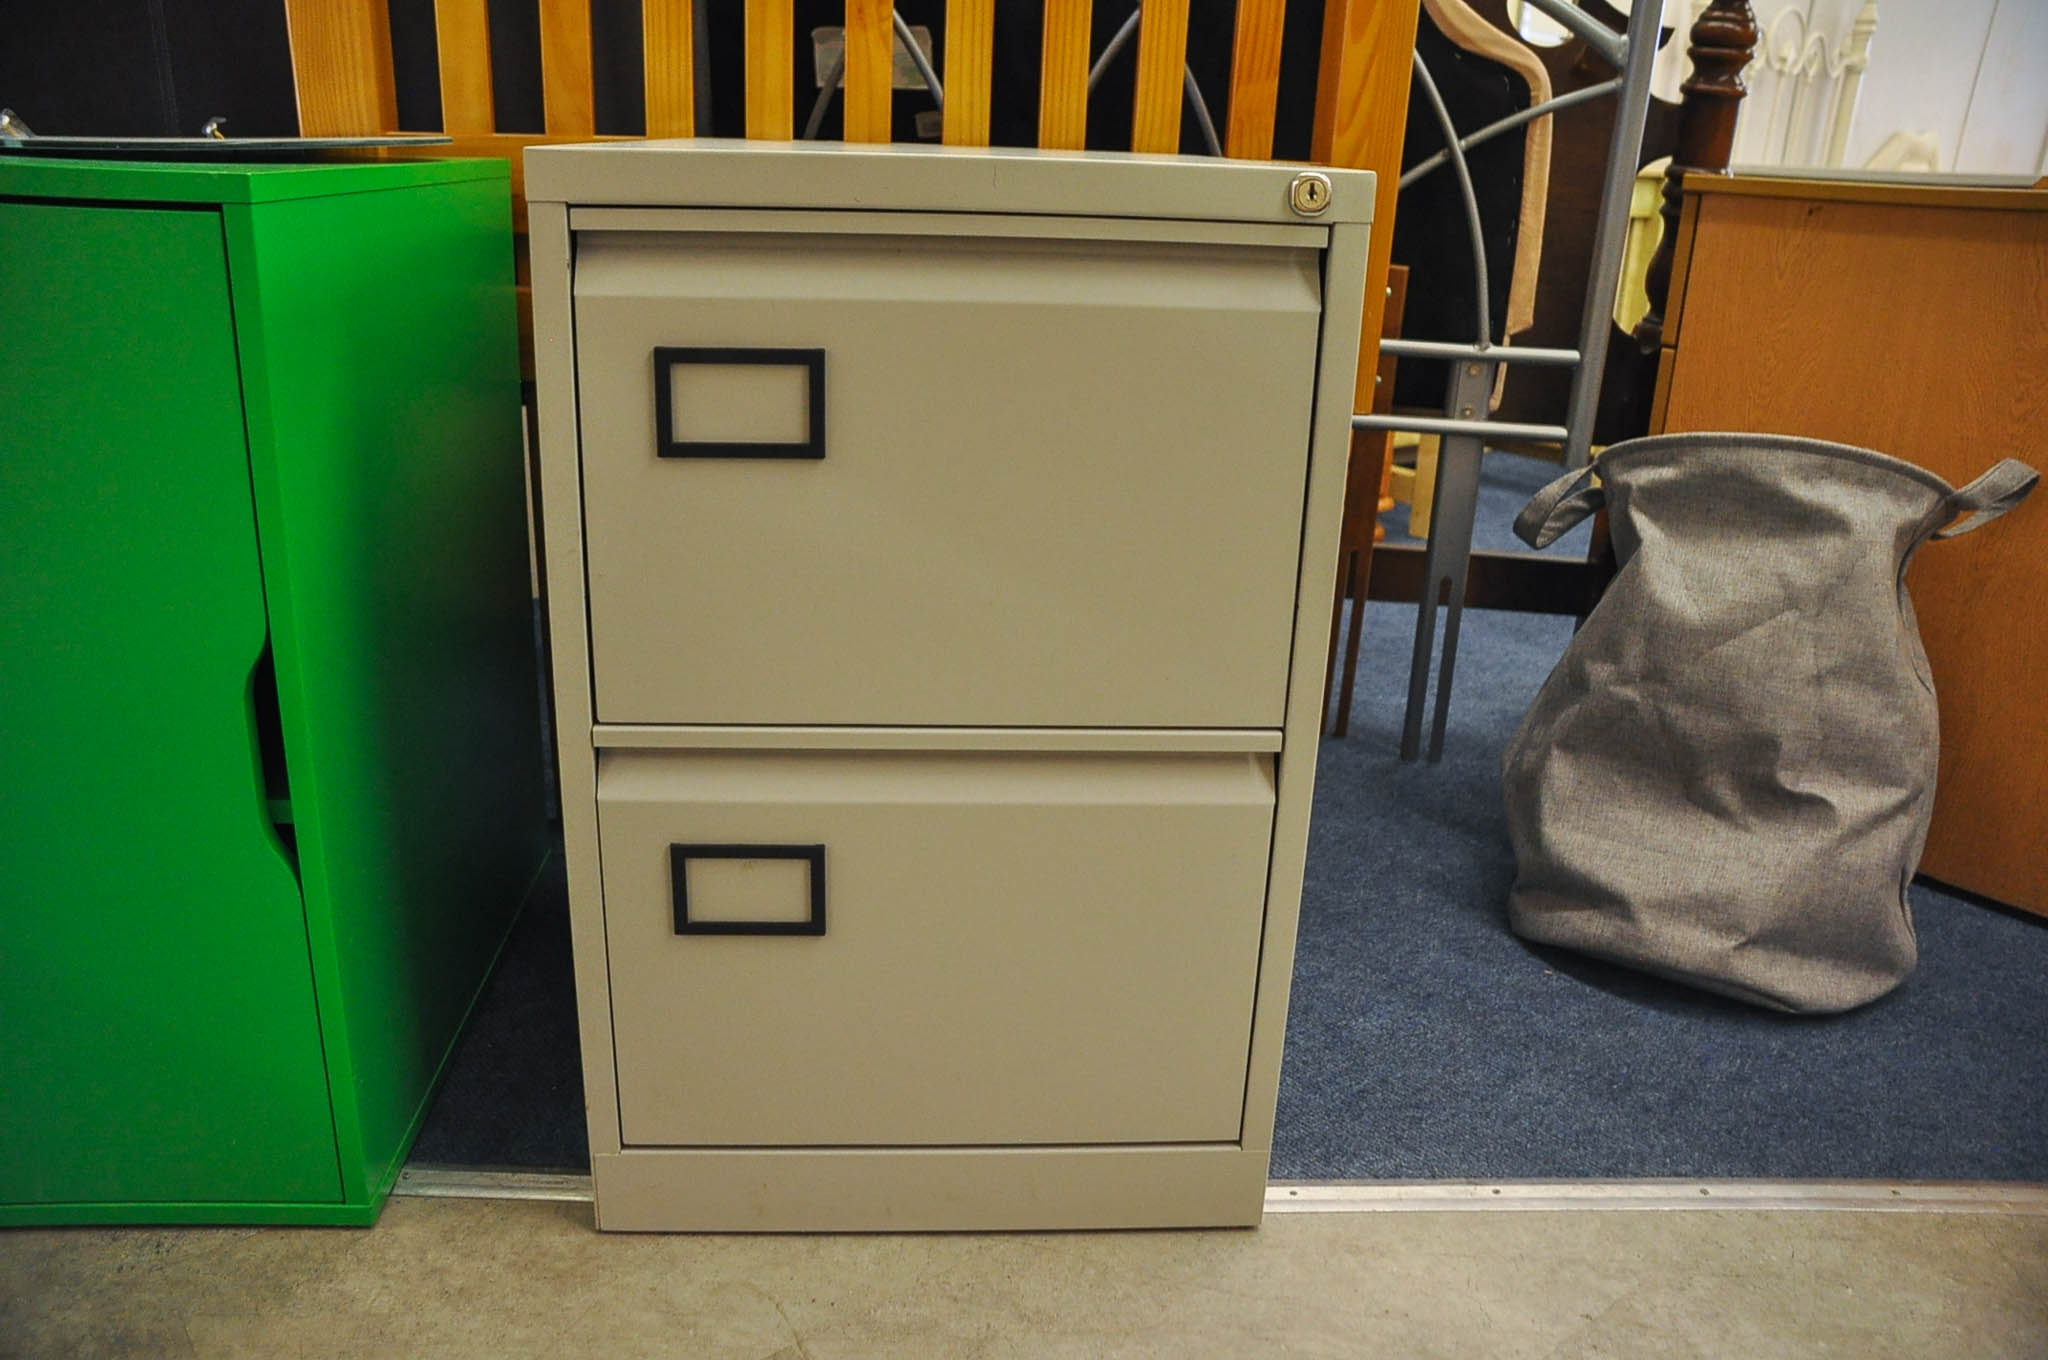 2 drawer metal filing cabinet. No key.